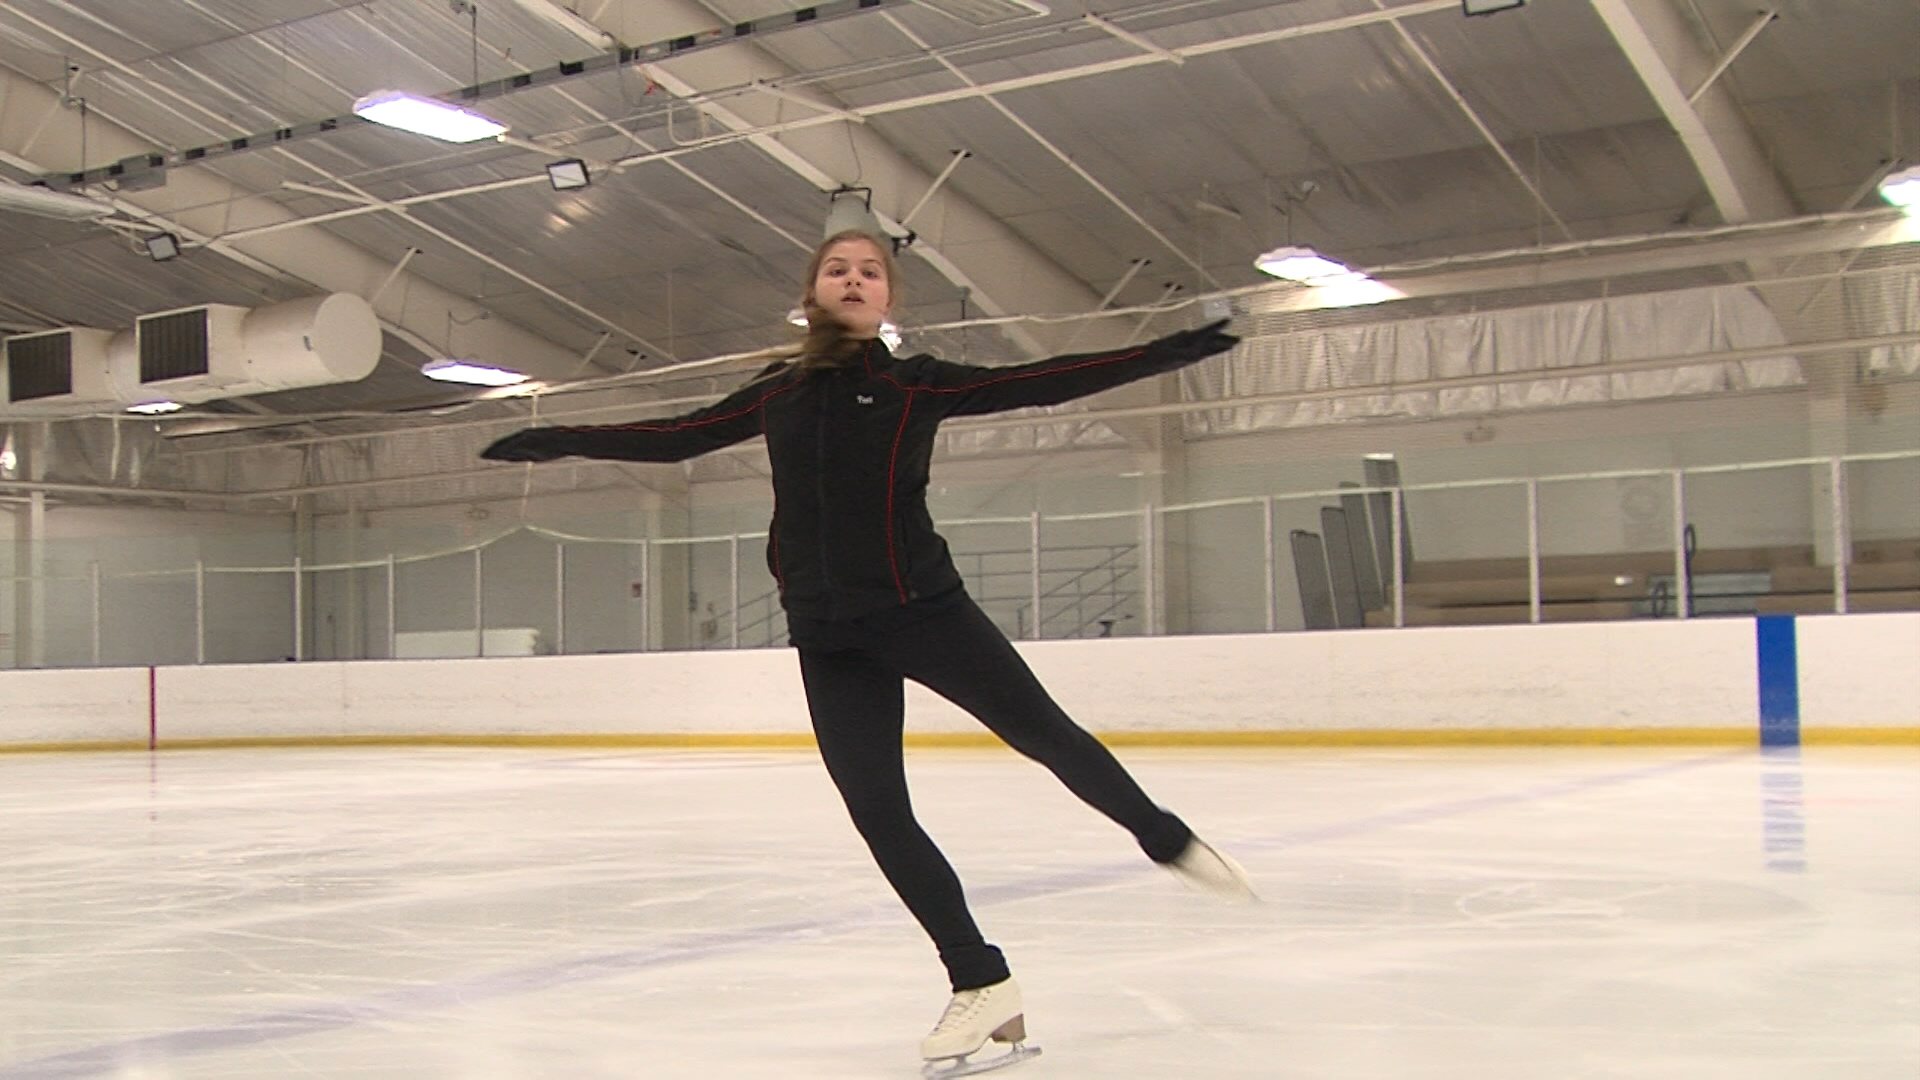 Former National Champion Figure Skater is Bringing the Sport of Figure Skating to Delmarva